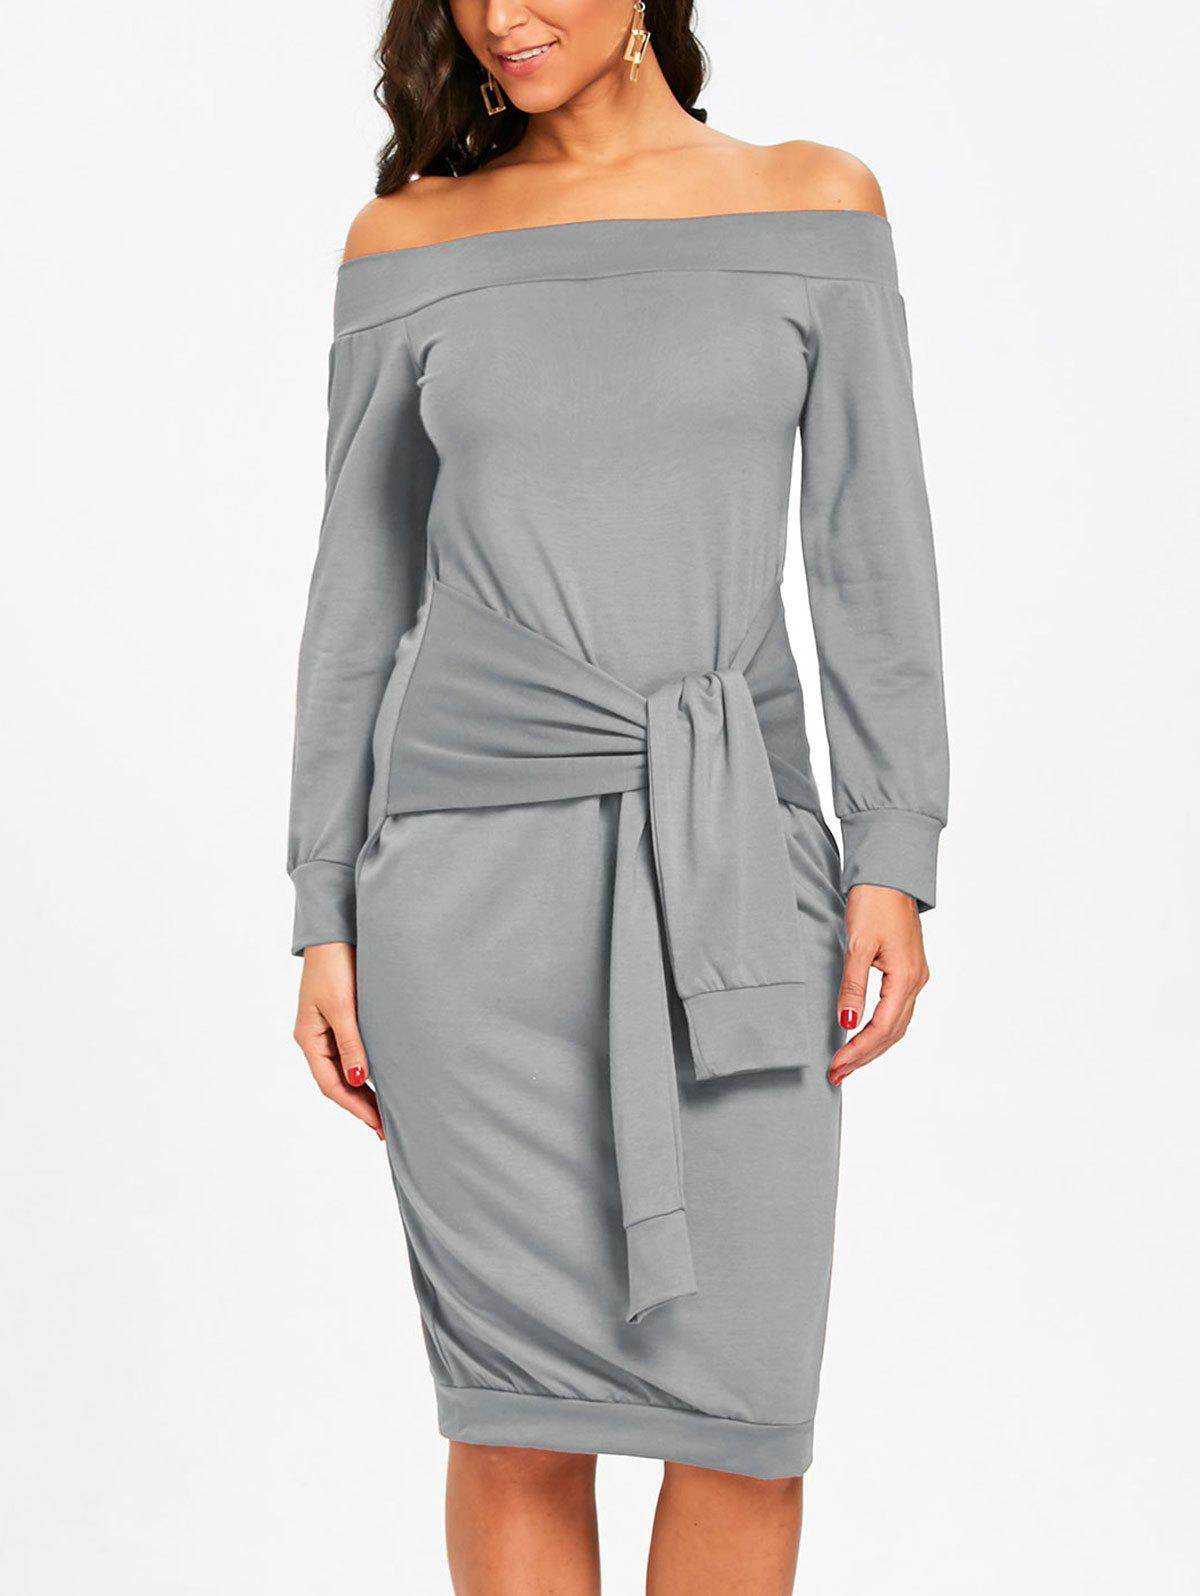 New Off The Shoulder Tie Waist Sweatshirt Dress